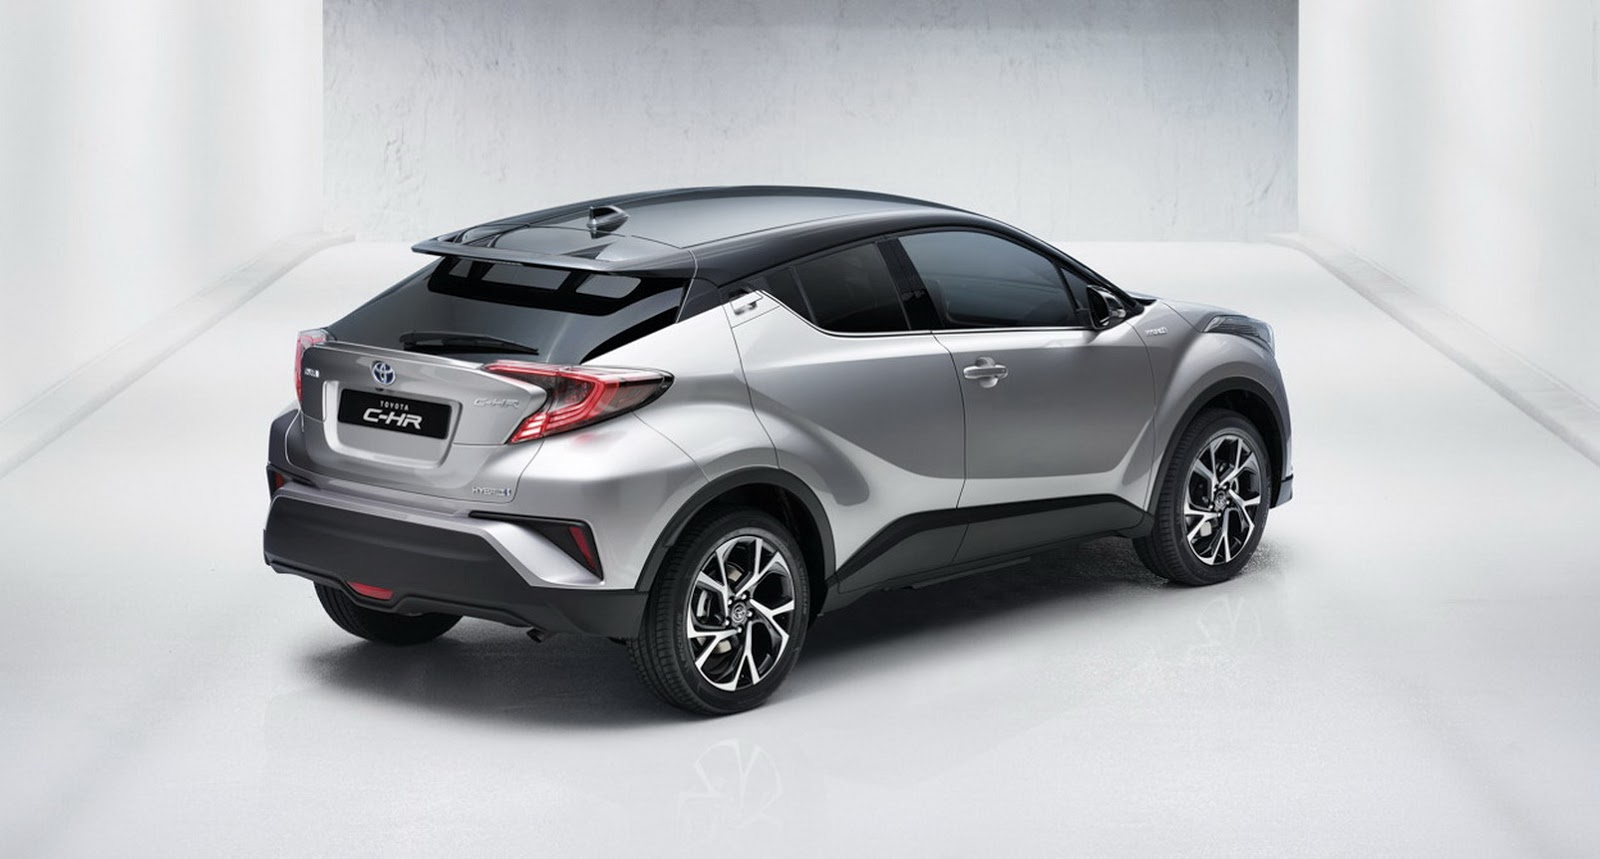 2017 Peugeot 3008 Review Redesign And Price >> New Toyota C-HR Gets 1.2L Turbo, 2.0L And 1.8L Hybrid ...